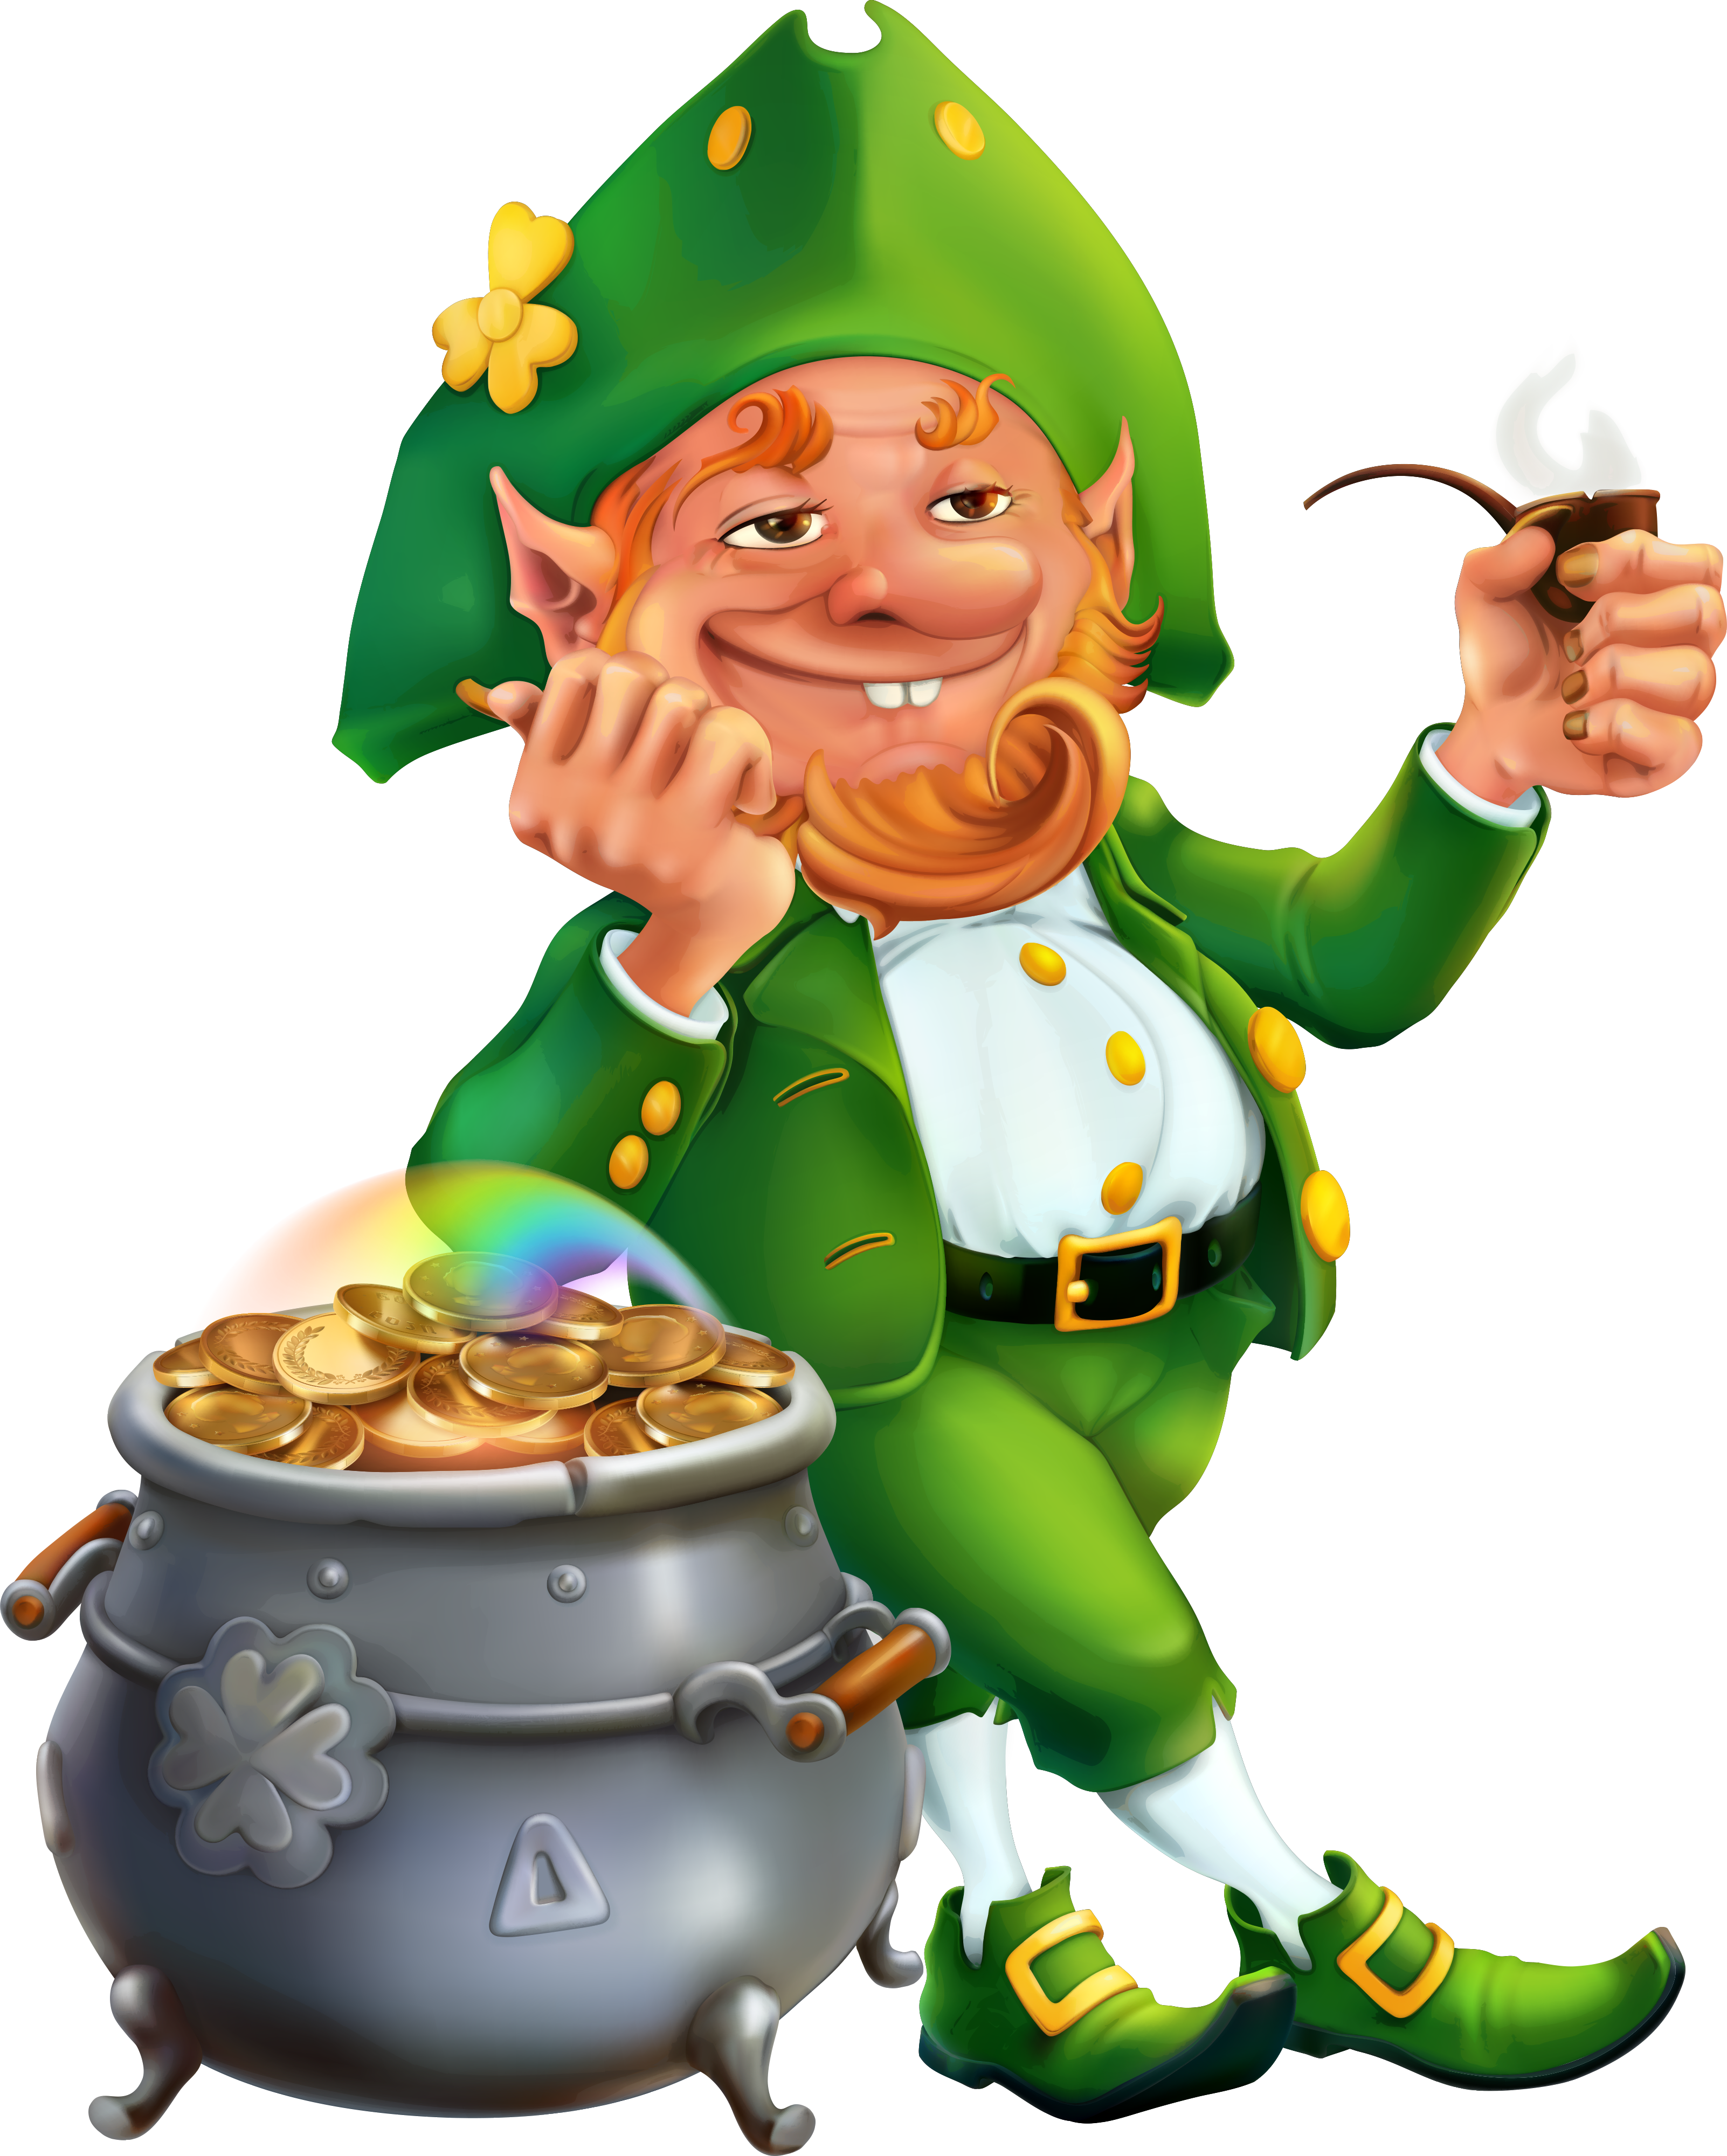 picture royalty free library . Mushrooms clipart leprechaun.